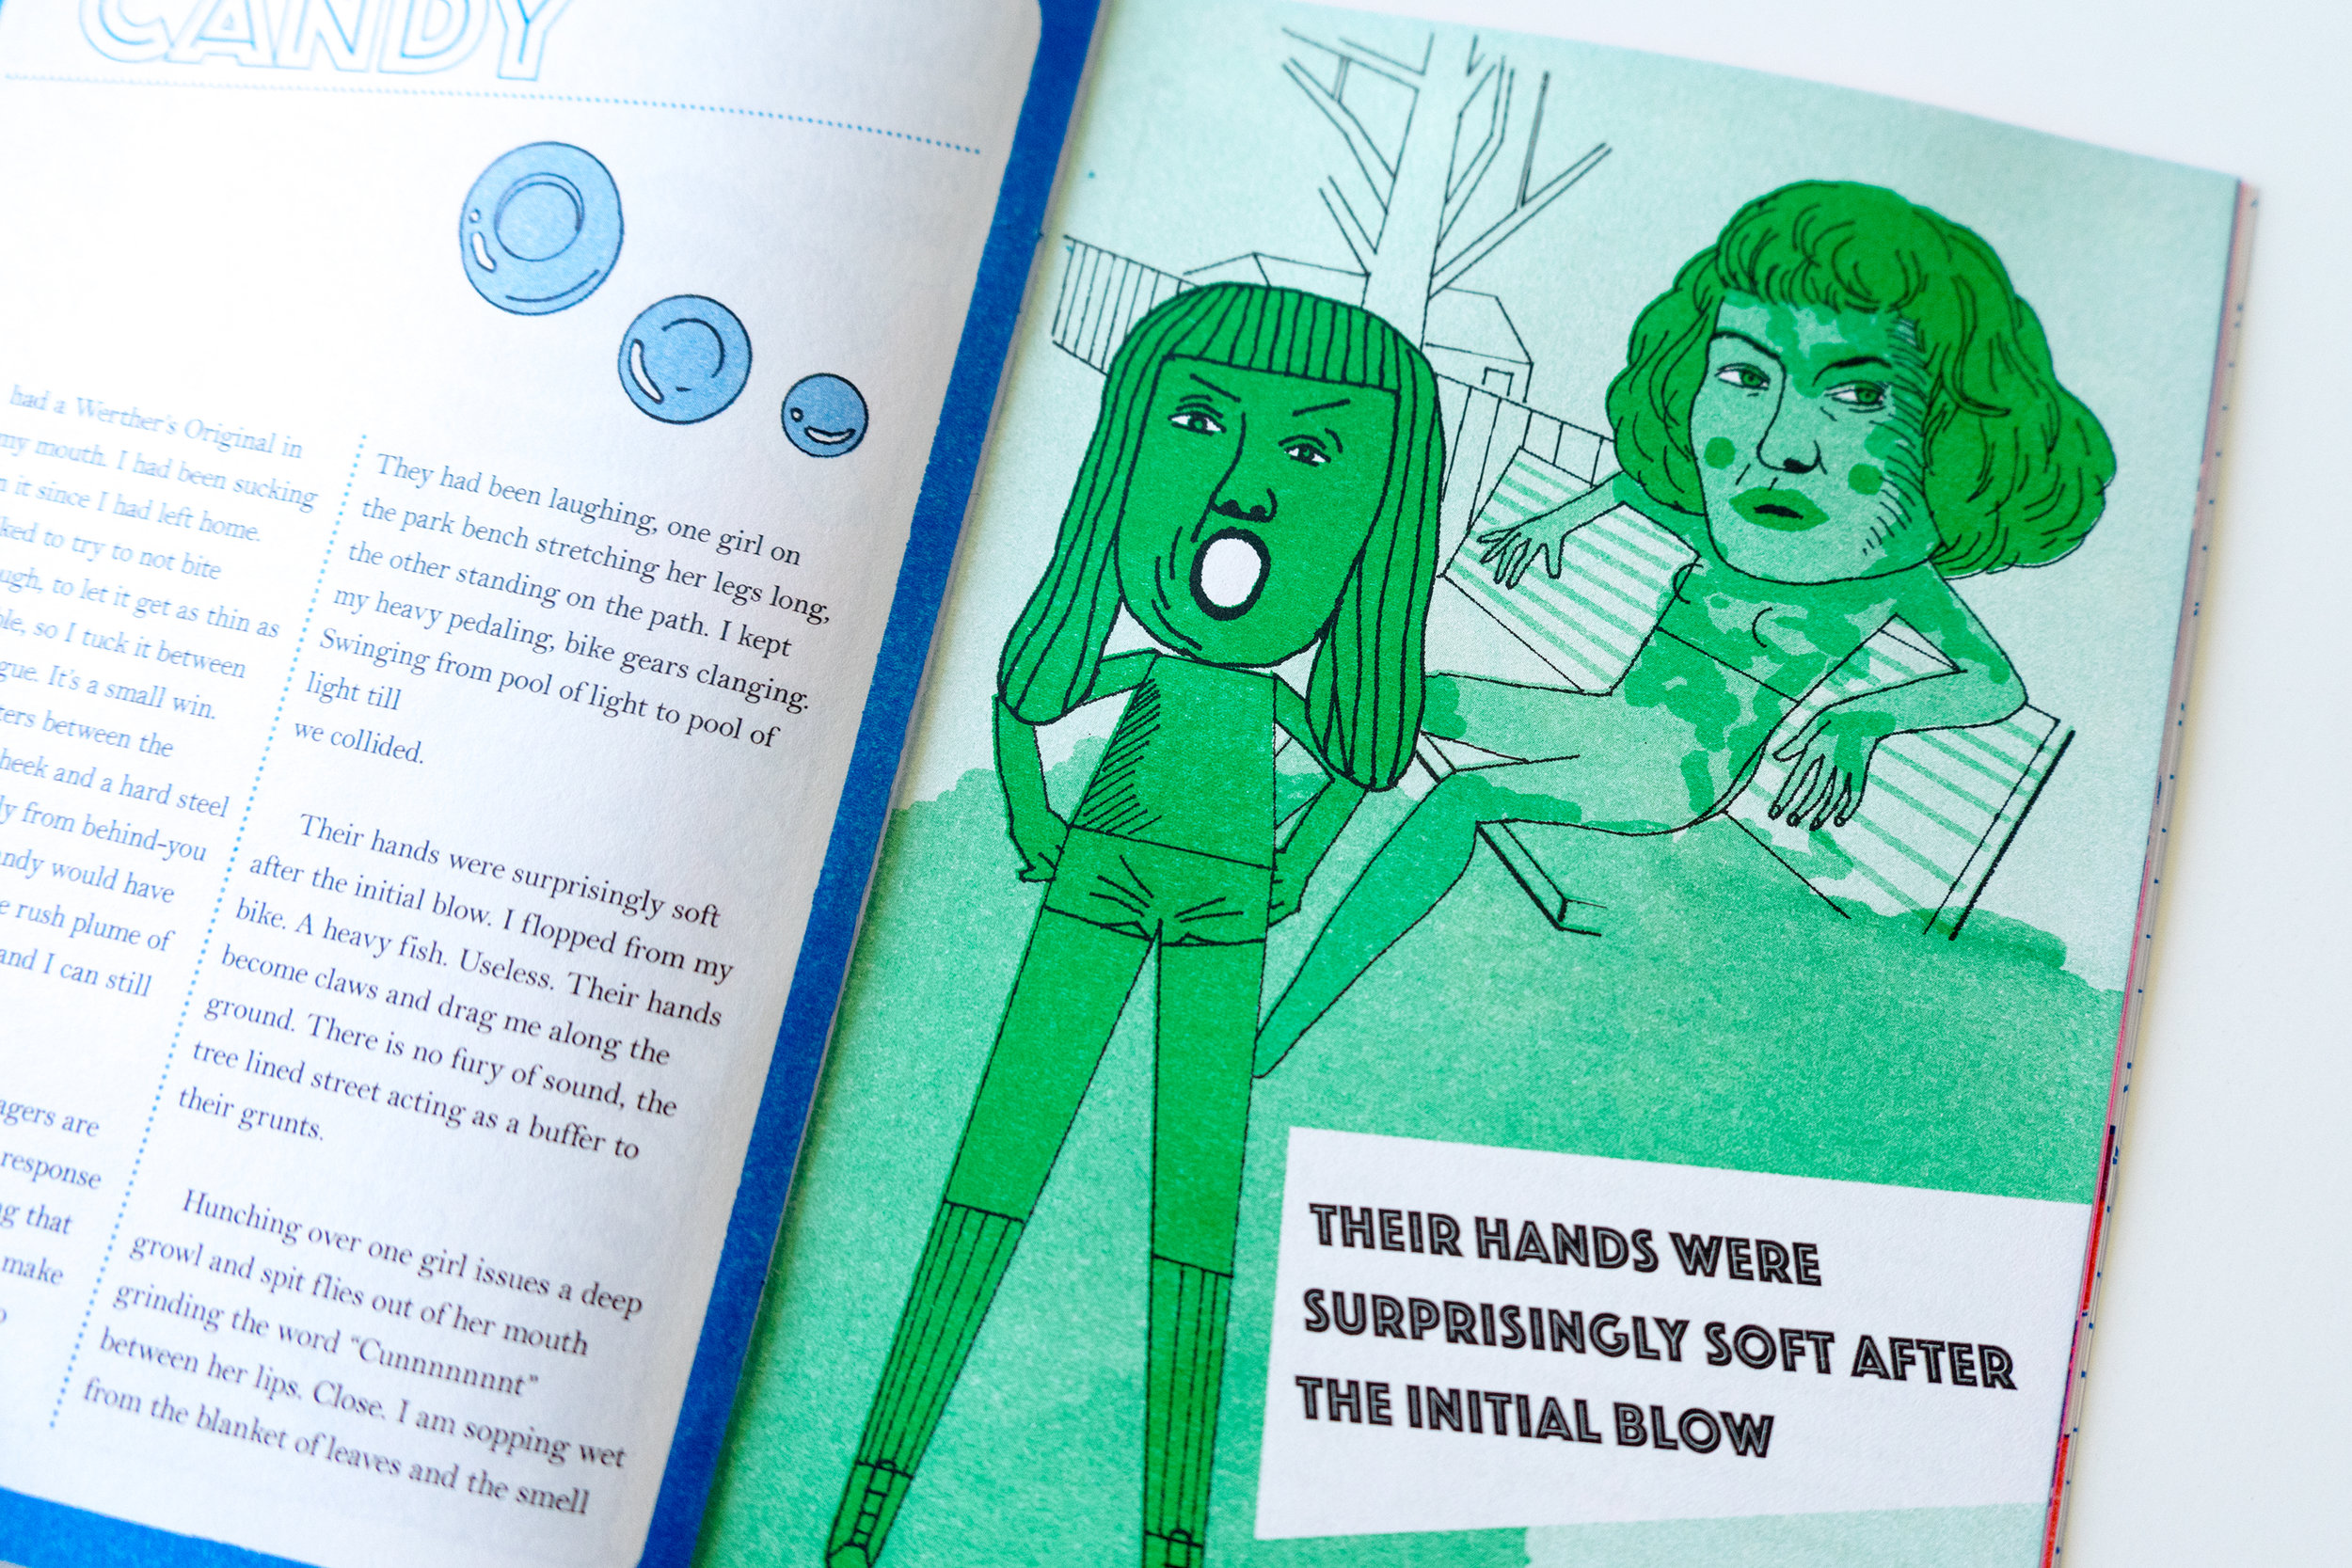 Story by Juliet Gagnon, illustrated by Jeroen de Leijer